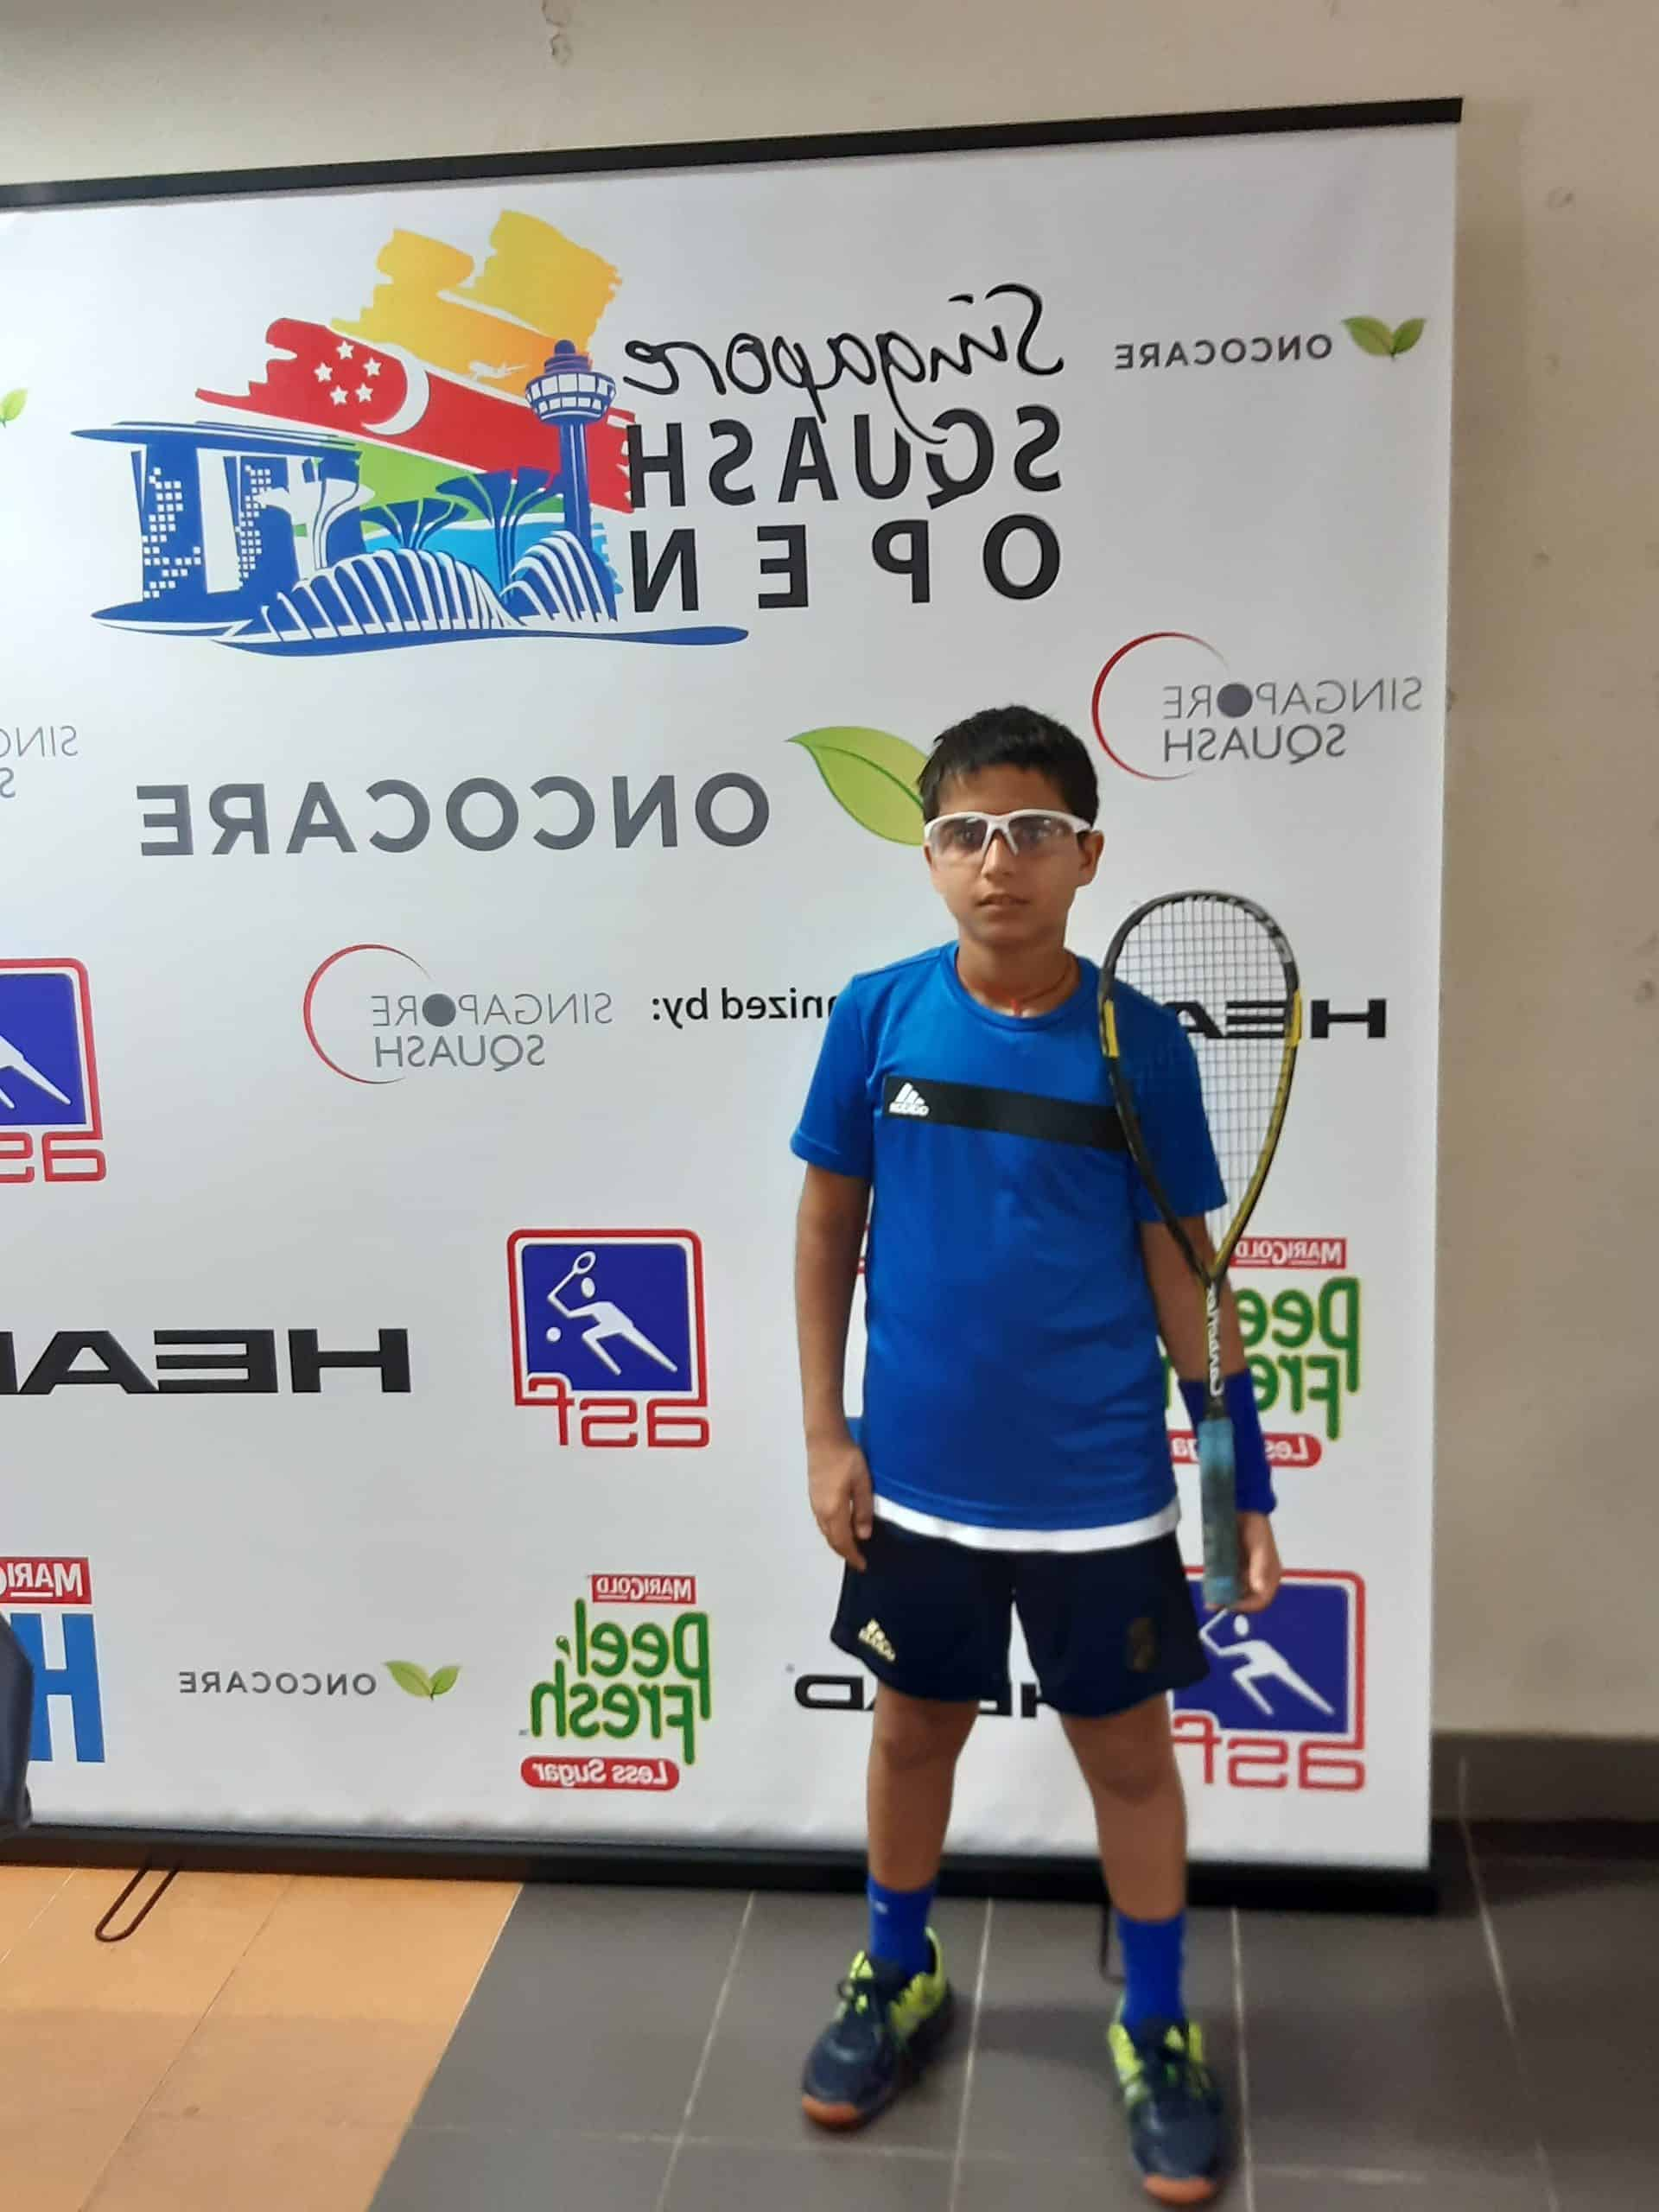 Anshuman , the proficient Squash player of Bandra West makes a mark in the international scene!!